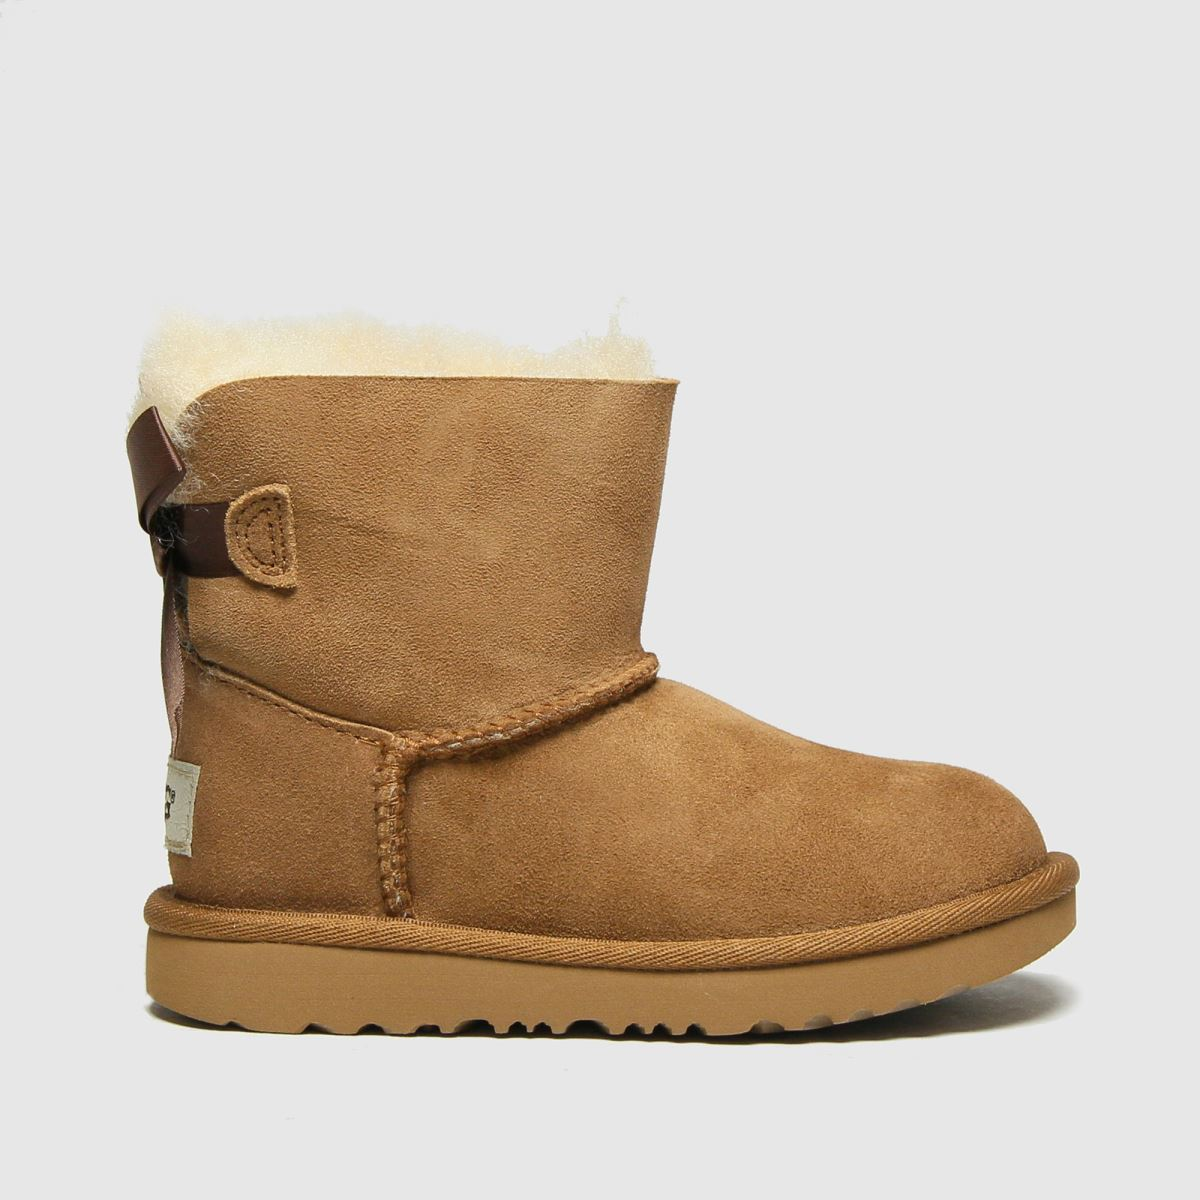 UGG Tan Mini Bailey Bow Ii Boots Toddler